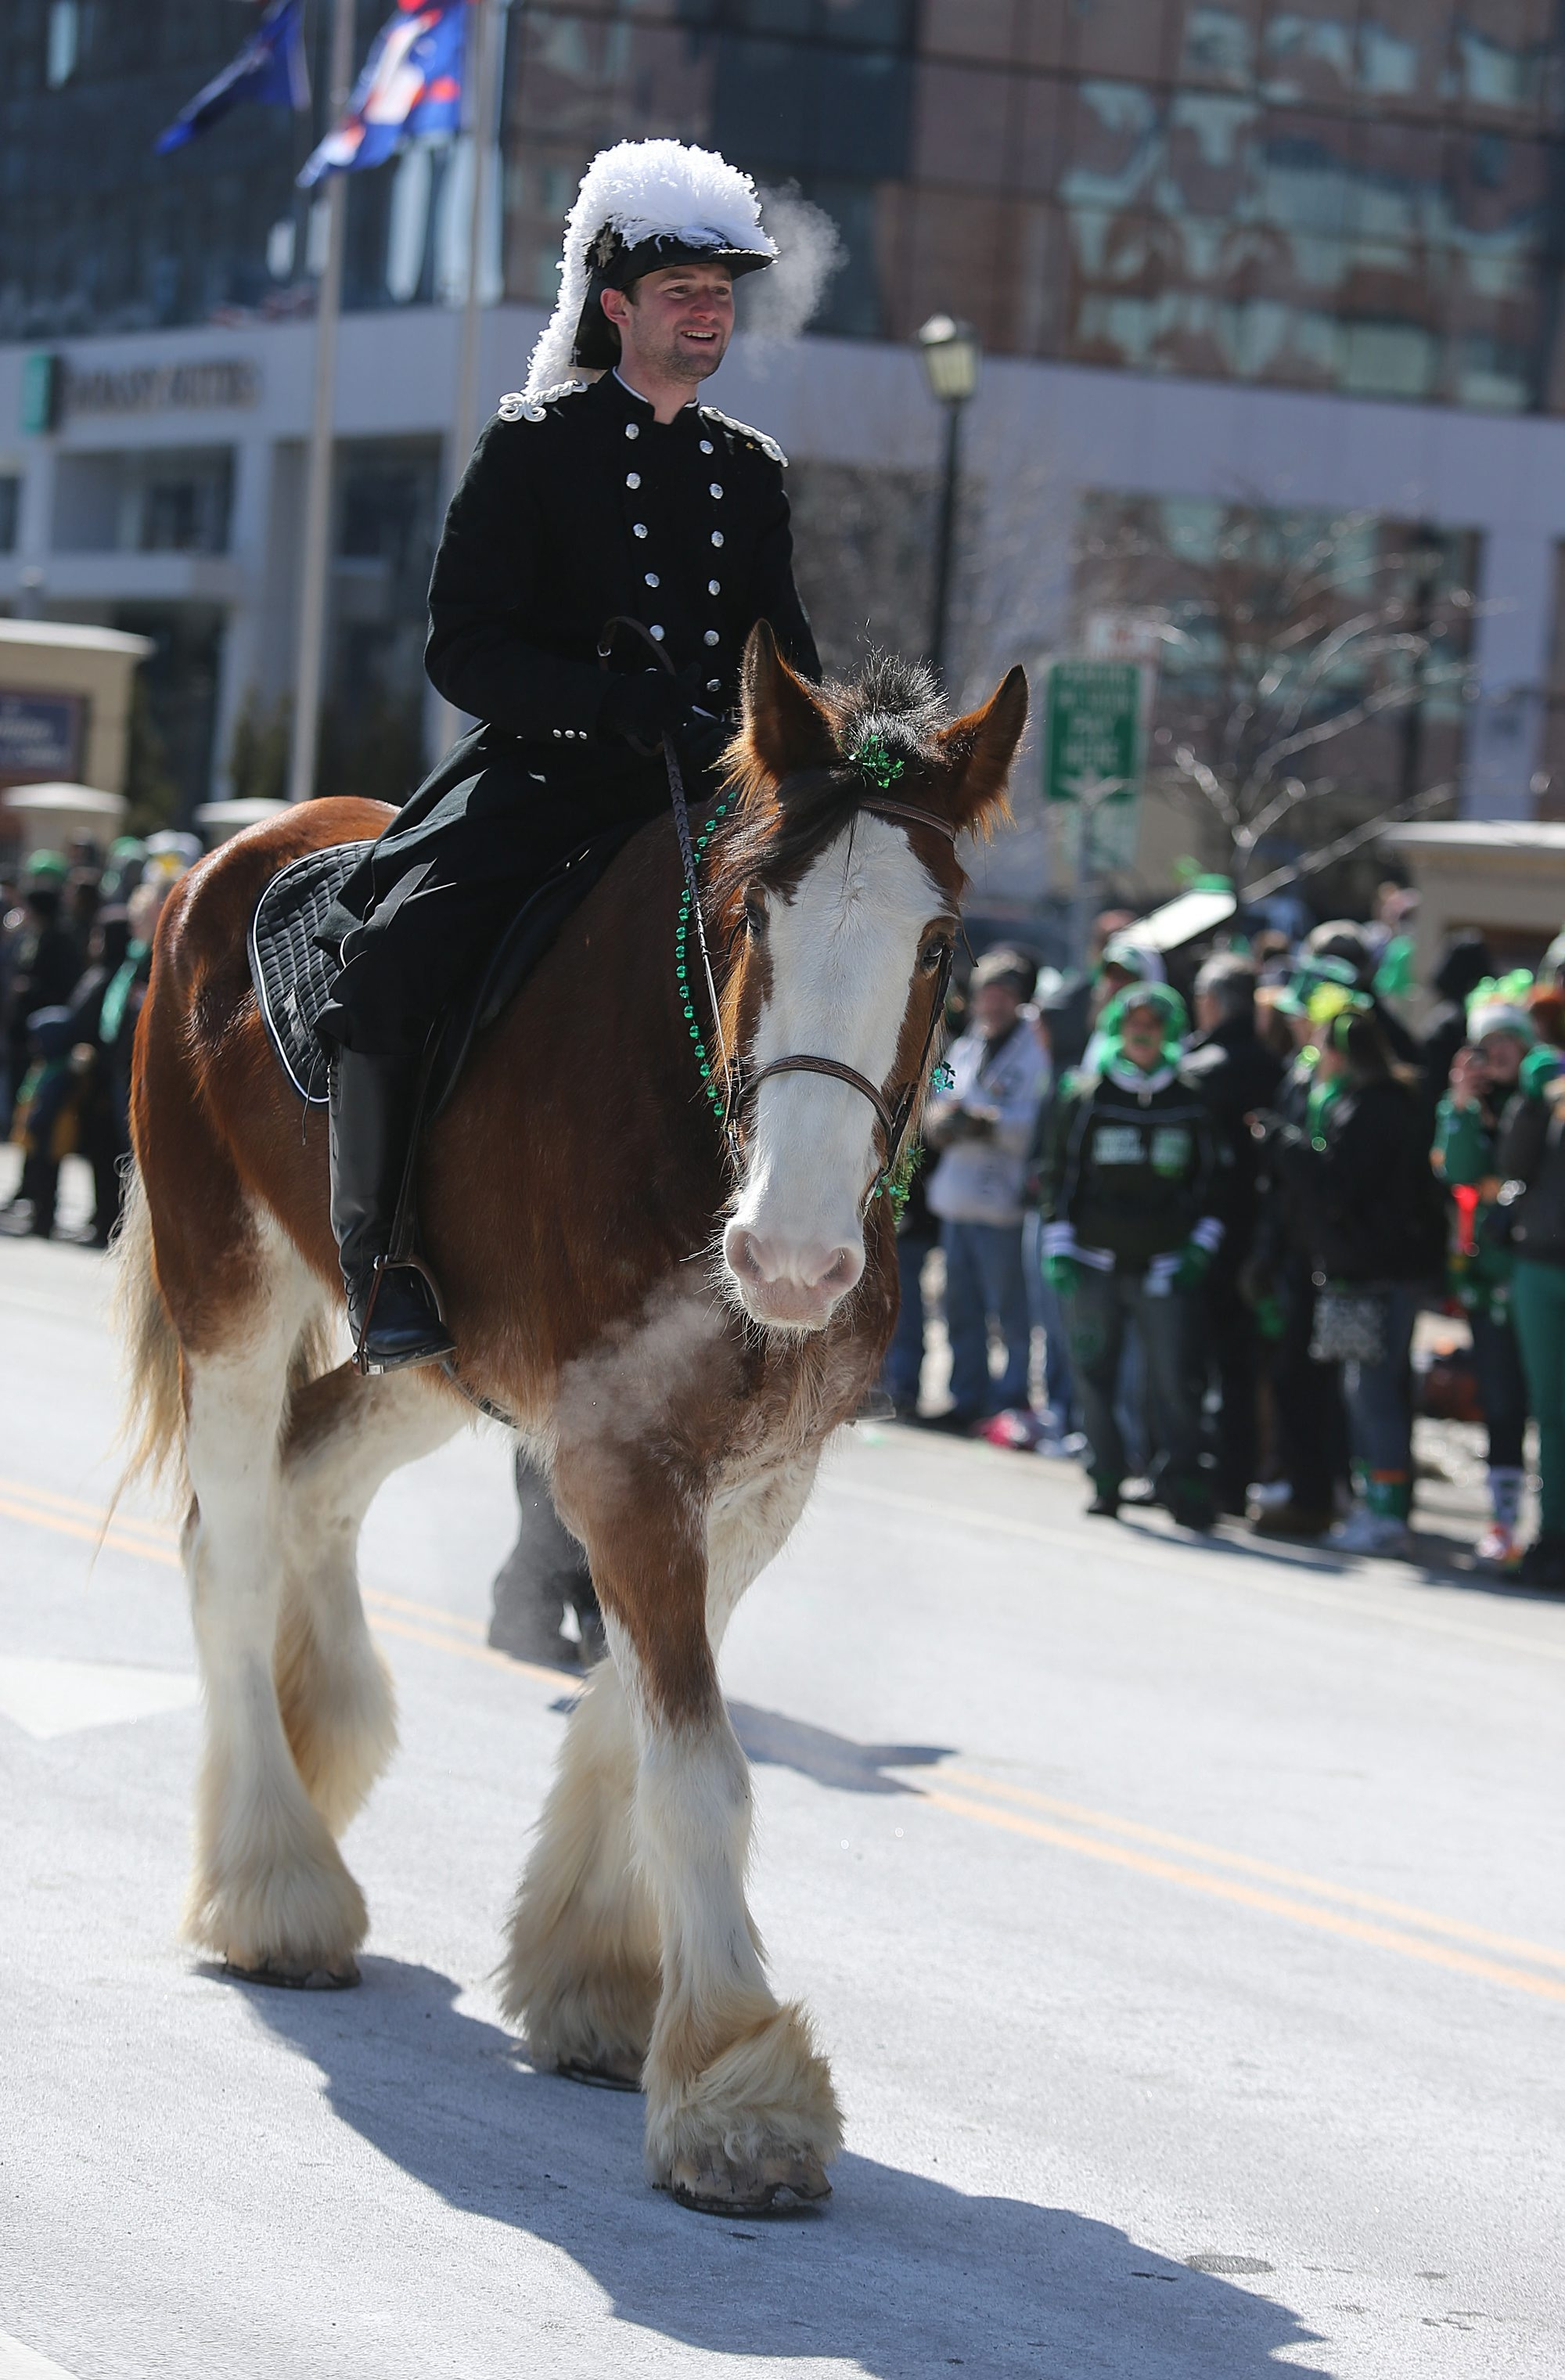 Josh Burkhardt and his horse, Jenna, are part of the Knights of St. John unit marching during the annual St. Patrick's Day Parade on Sunday. See a photo gallery at Buffalonews.com.